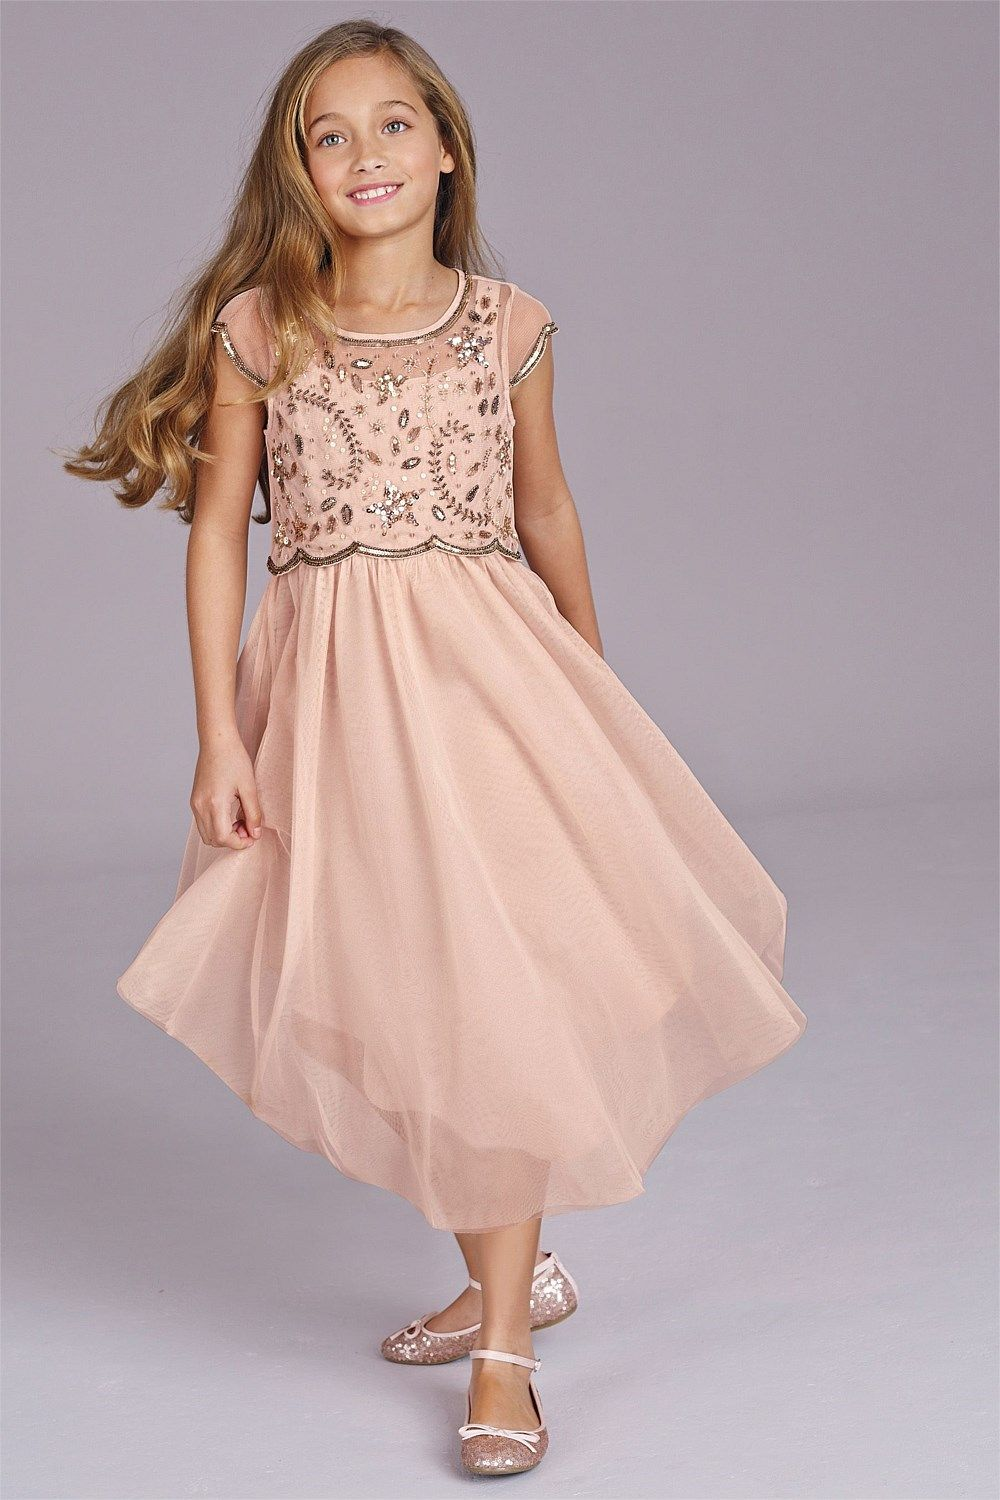 Girls Dresses Online - 3 to 16 years - Next Pink Vintage Dress ...